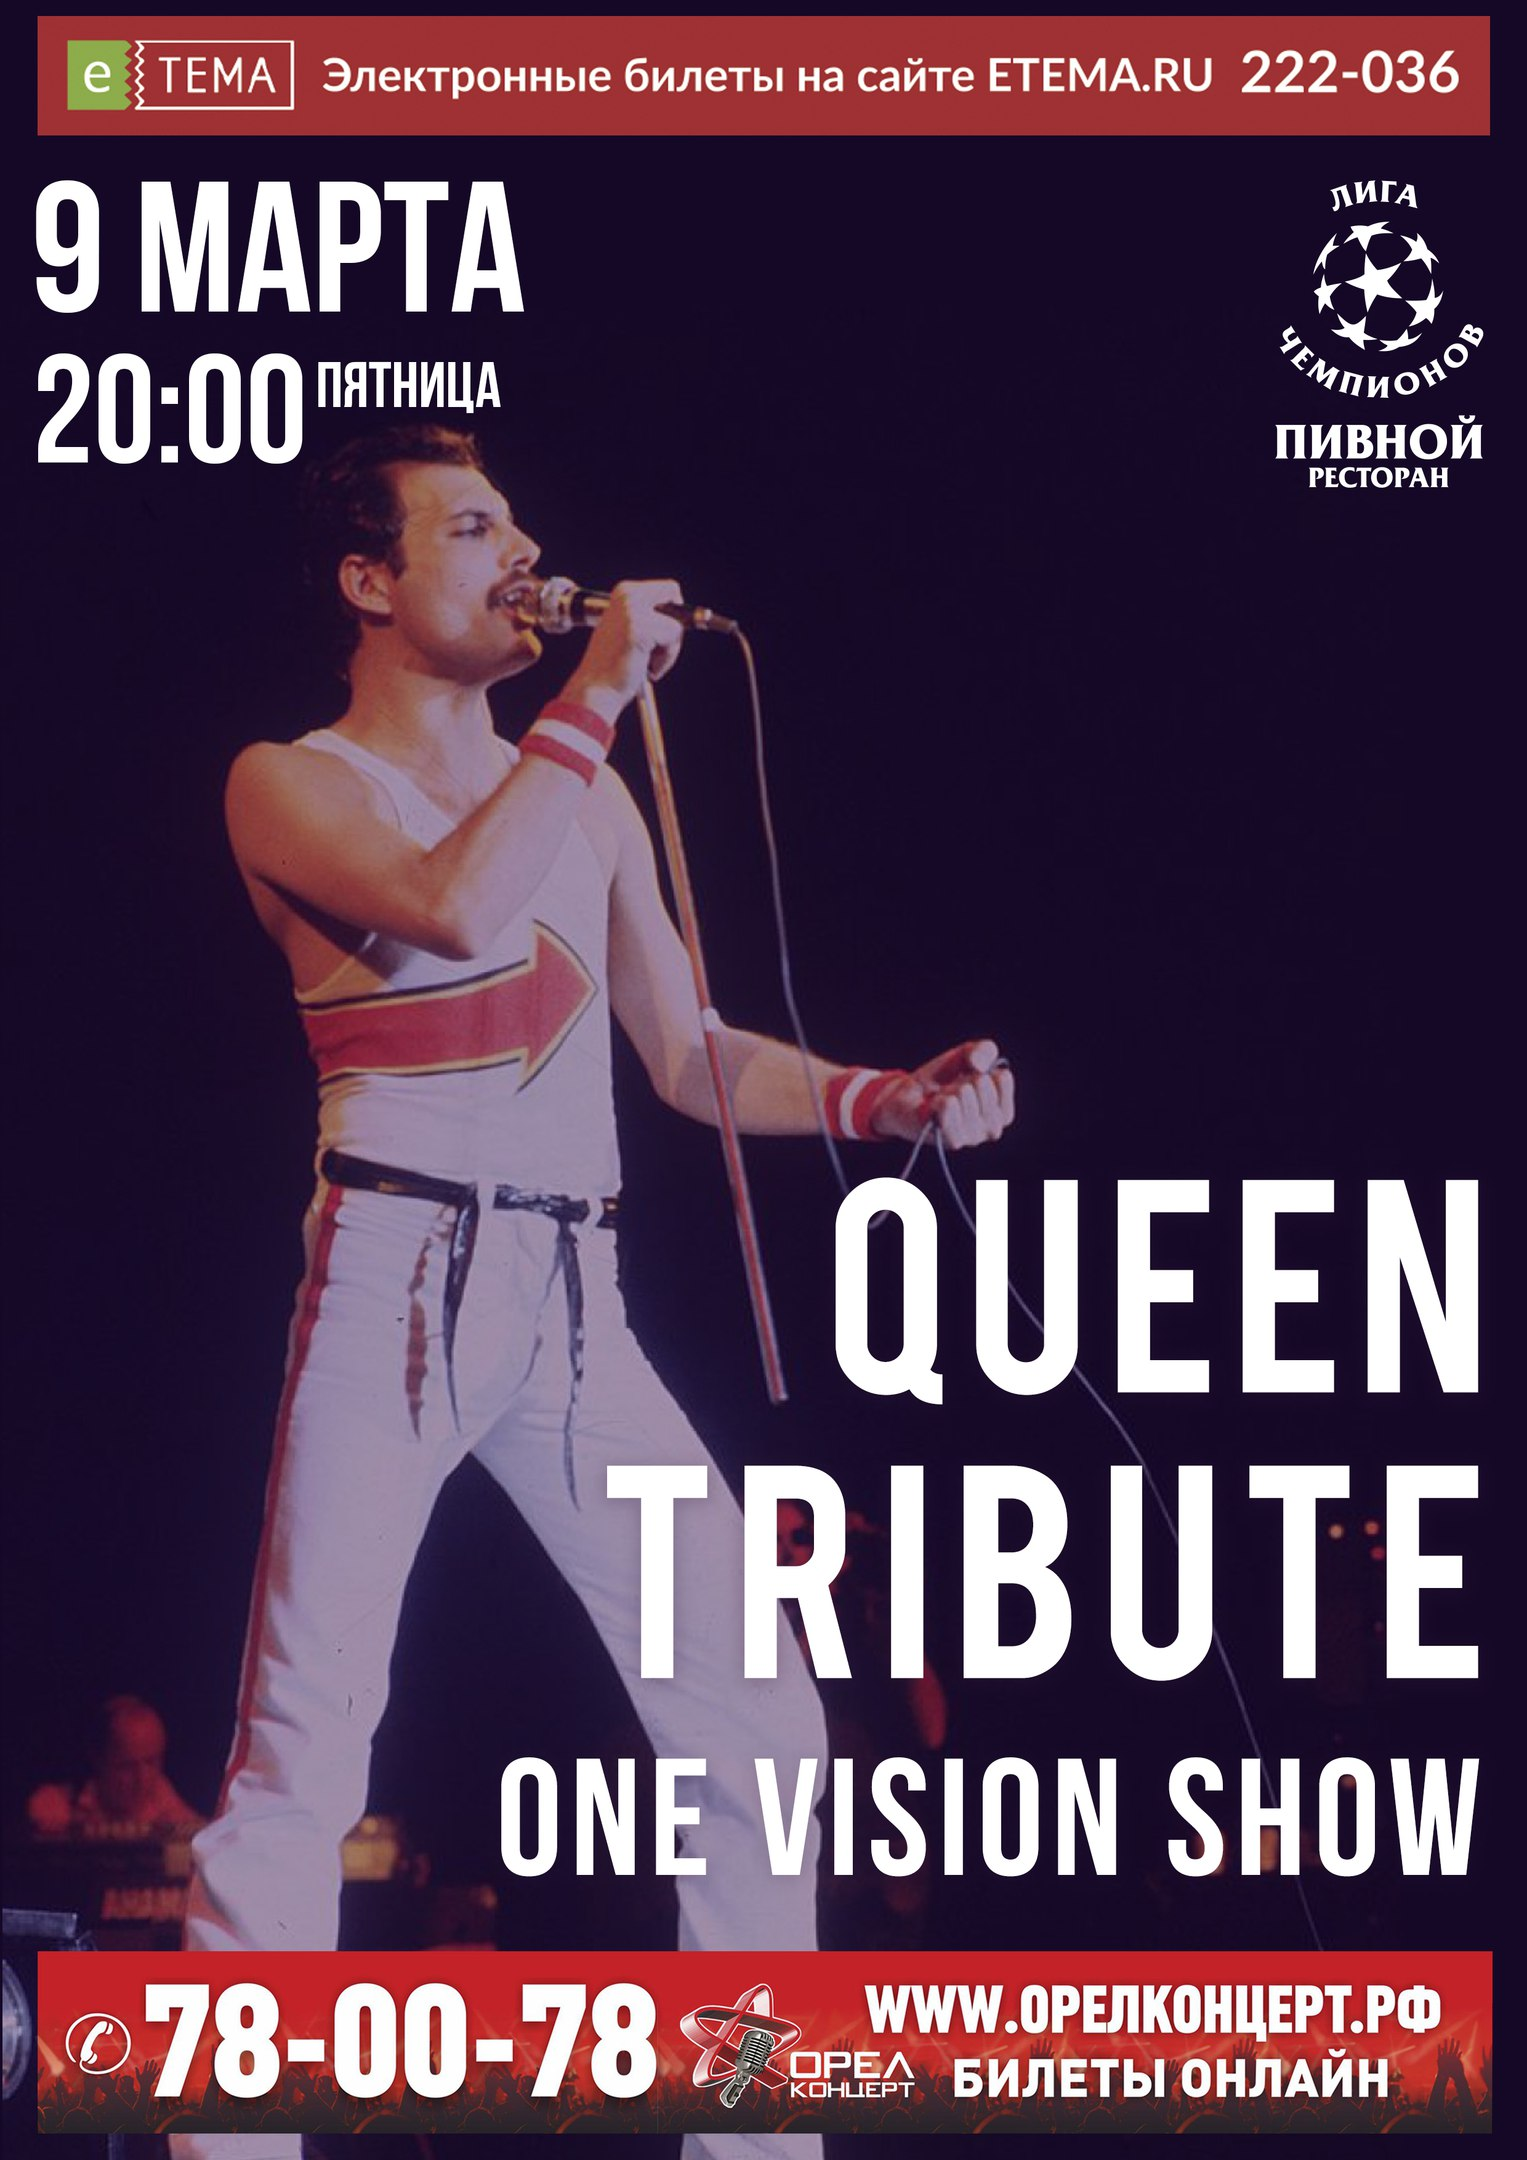 One Vision Show «Queen Tribute»